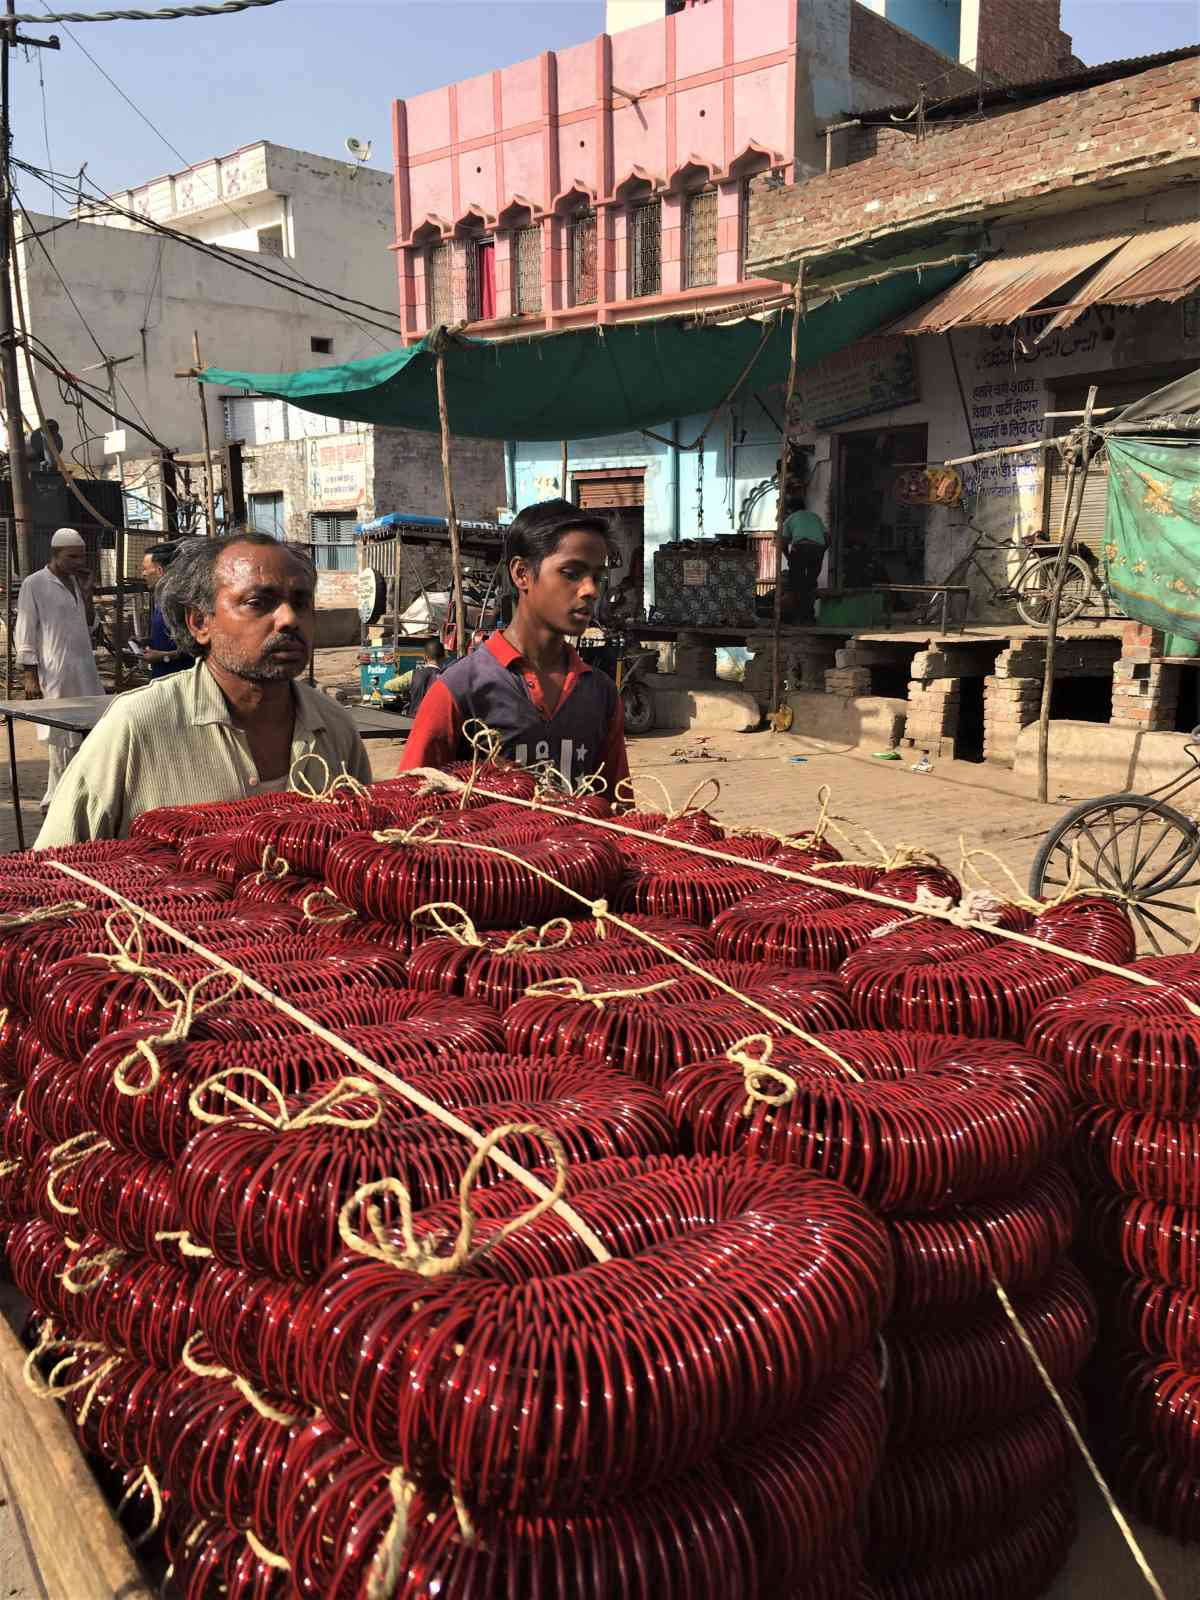 A vendor sells bangles in Firozabad. (Photo credit: Akash Bisht).